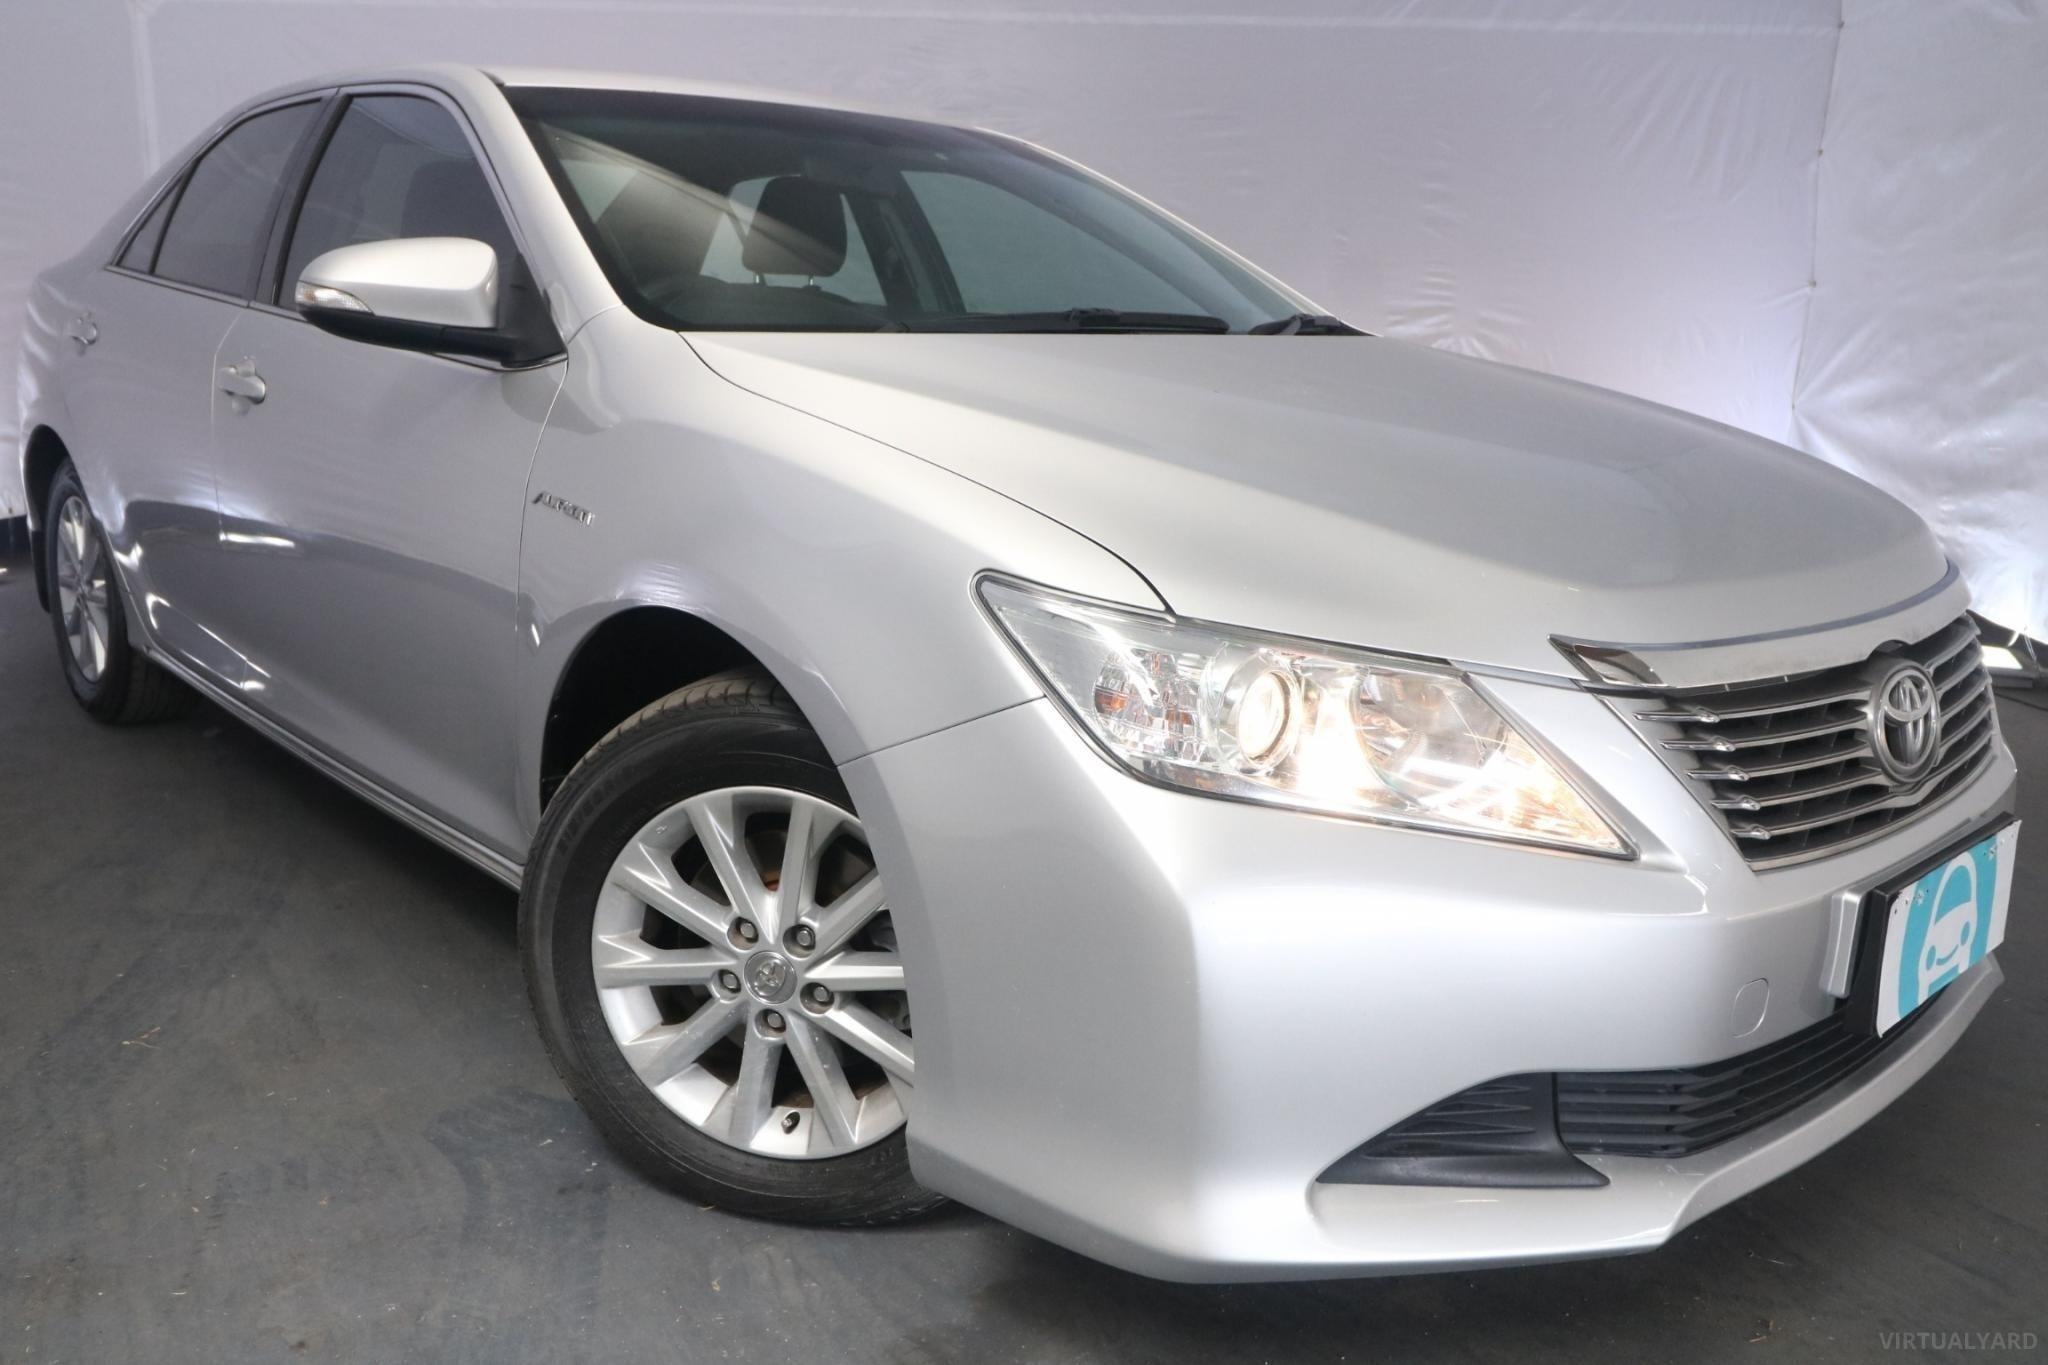 2012 Toyota Aurion AT-X GSV40R 09 UPGRADE / 6 Speed Auto Sequential / Sedan / 3.5L / 6 Cylinder / Petrol / 4x2 / 4 door / September release JQH12A